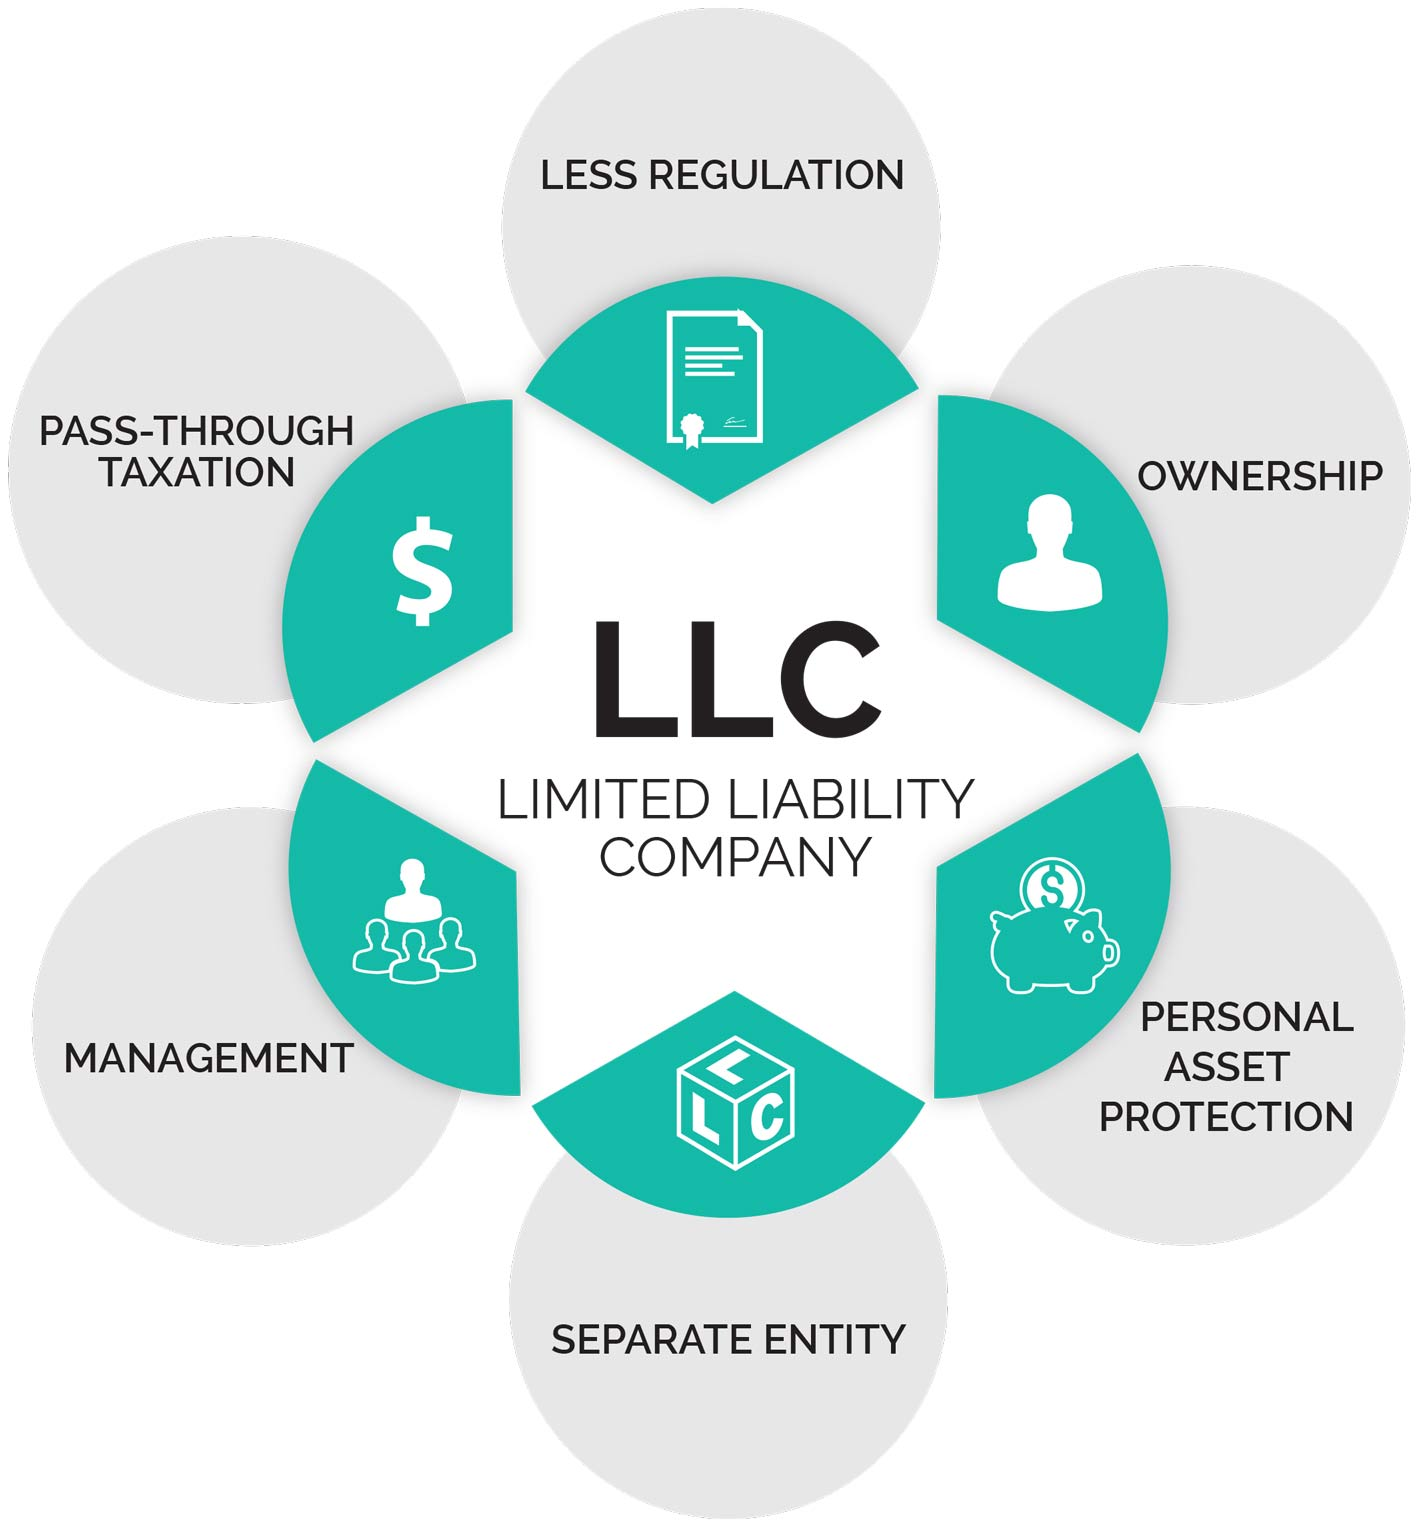 LLC benefits diagram less regulation, ownership, personal asset protection, separate entity, management, passthrough taxation